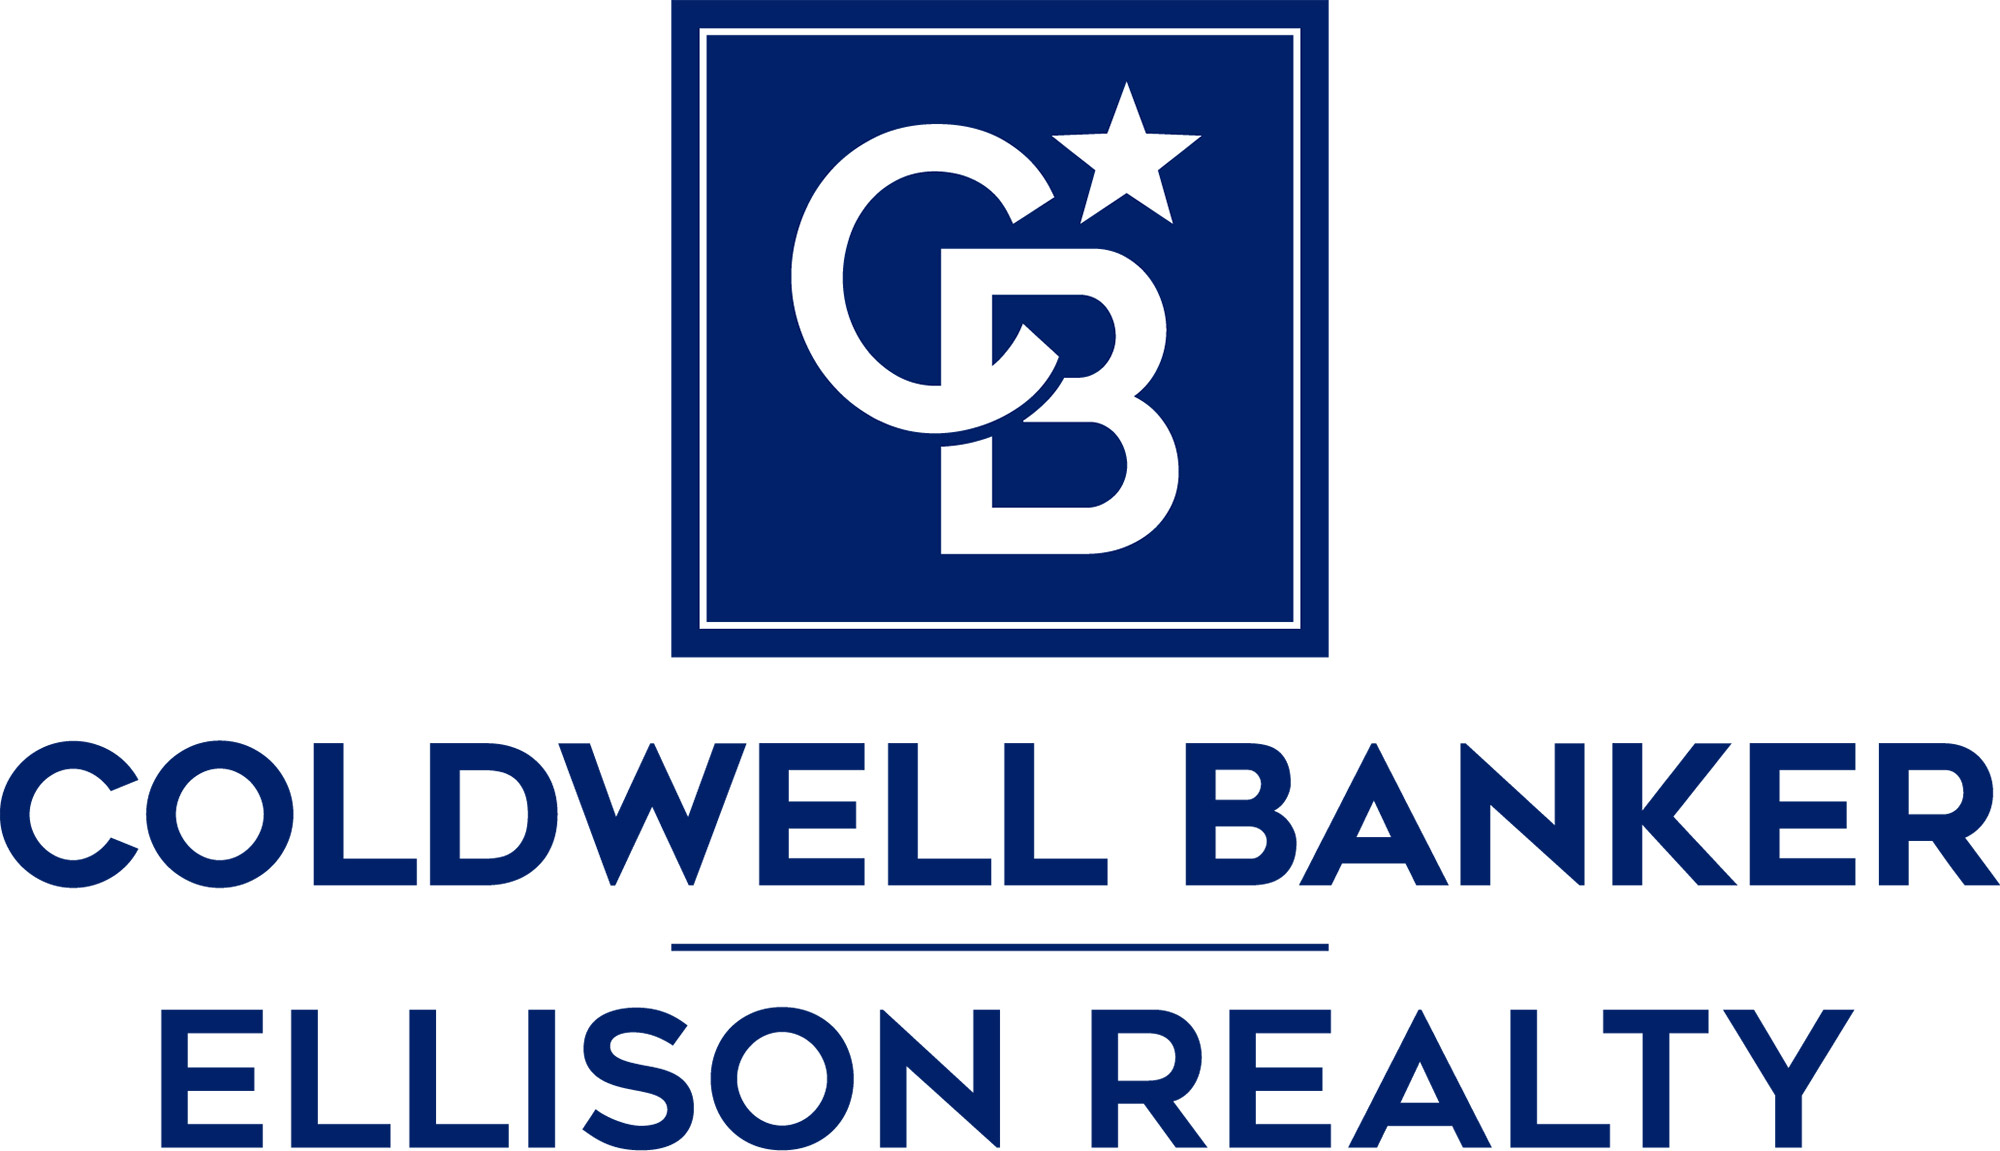 Edward Wise - Coldwell Banker Ellison Realty